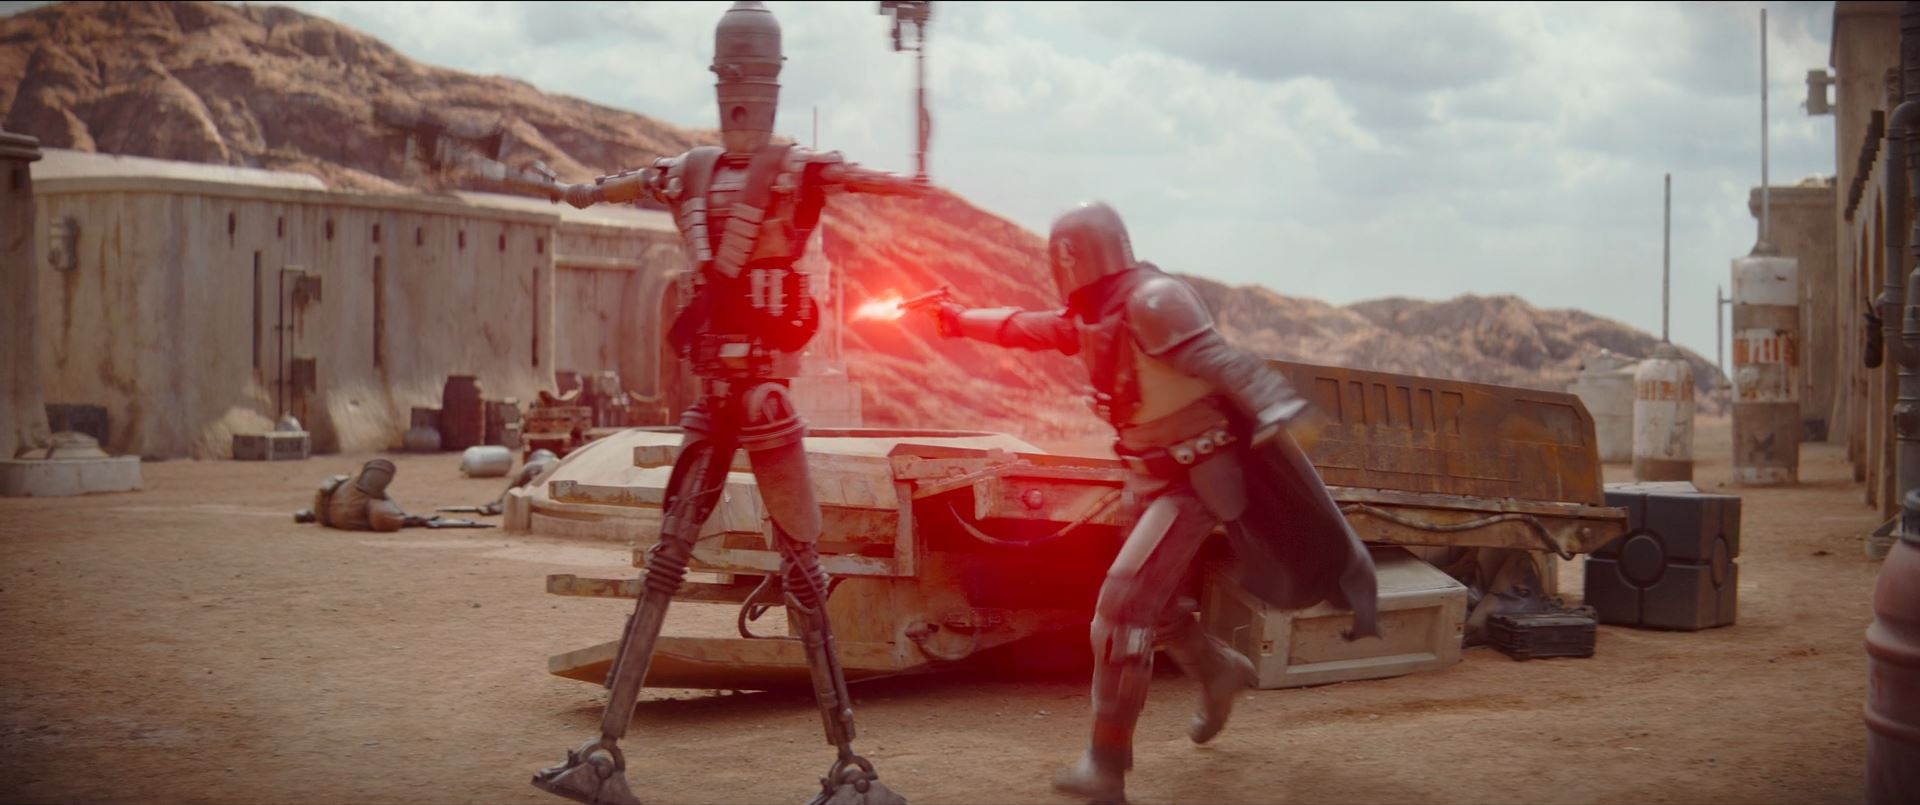 The Mandalorian and IG-11 fight their way through the compound